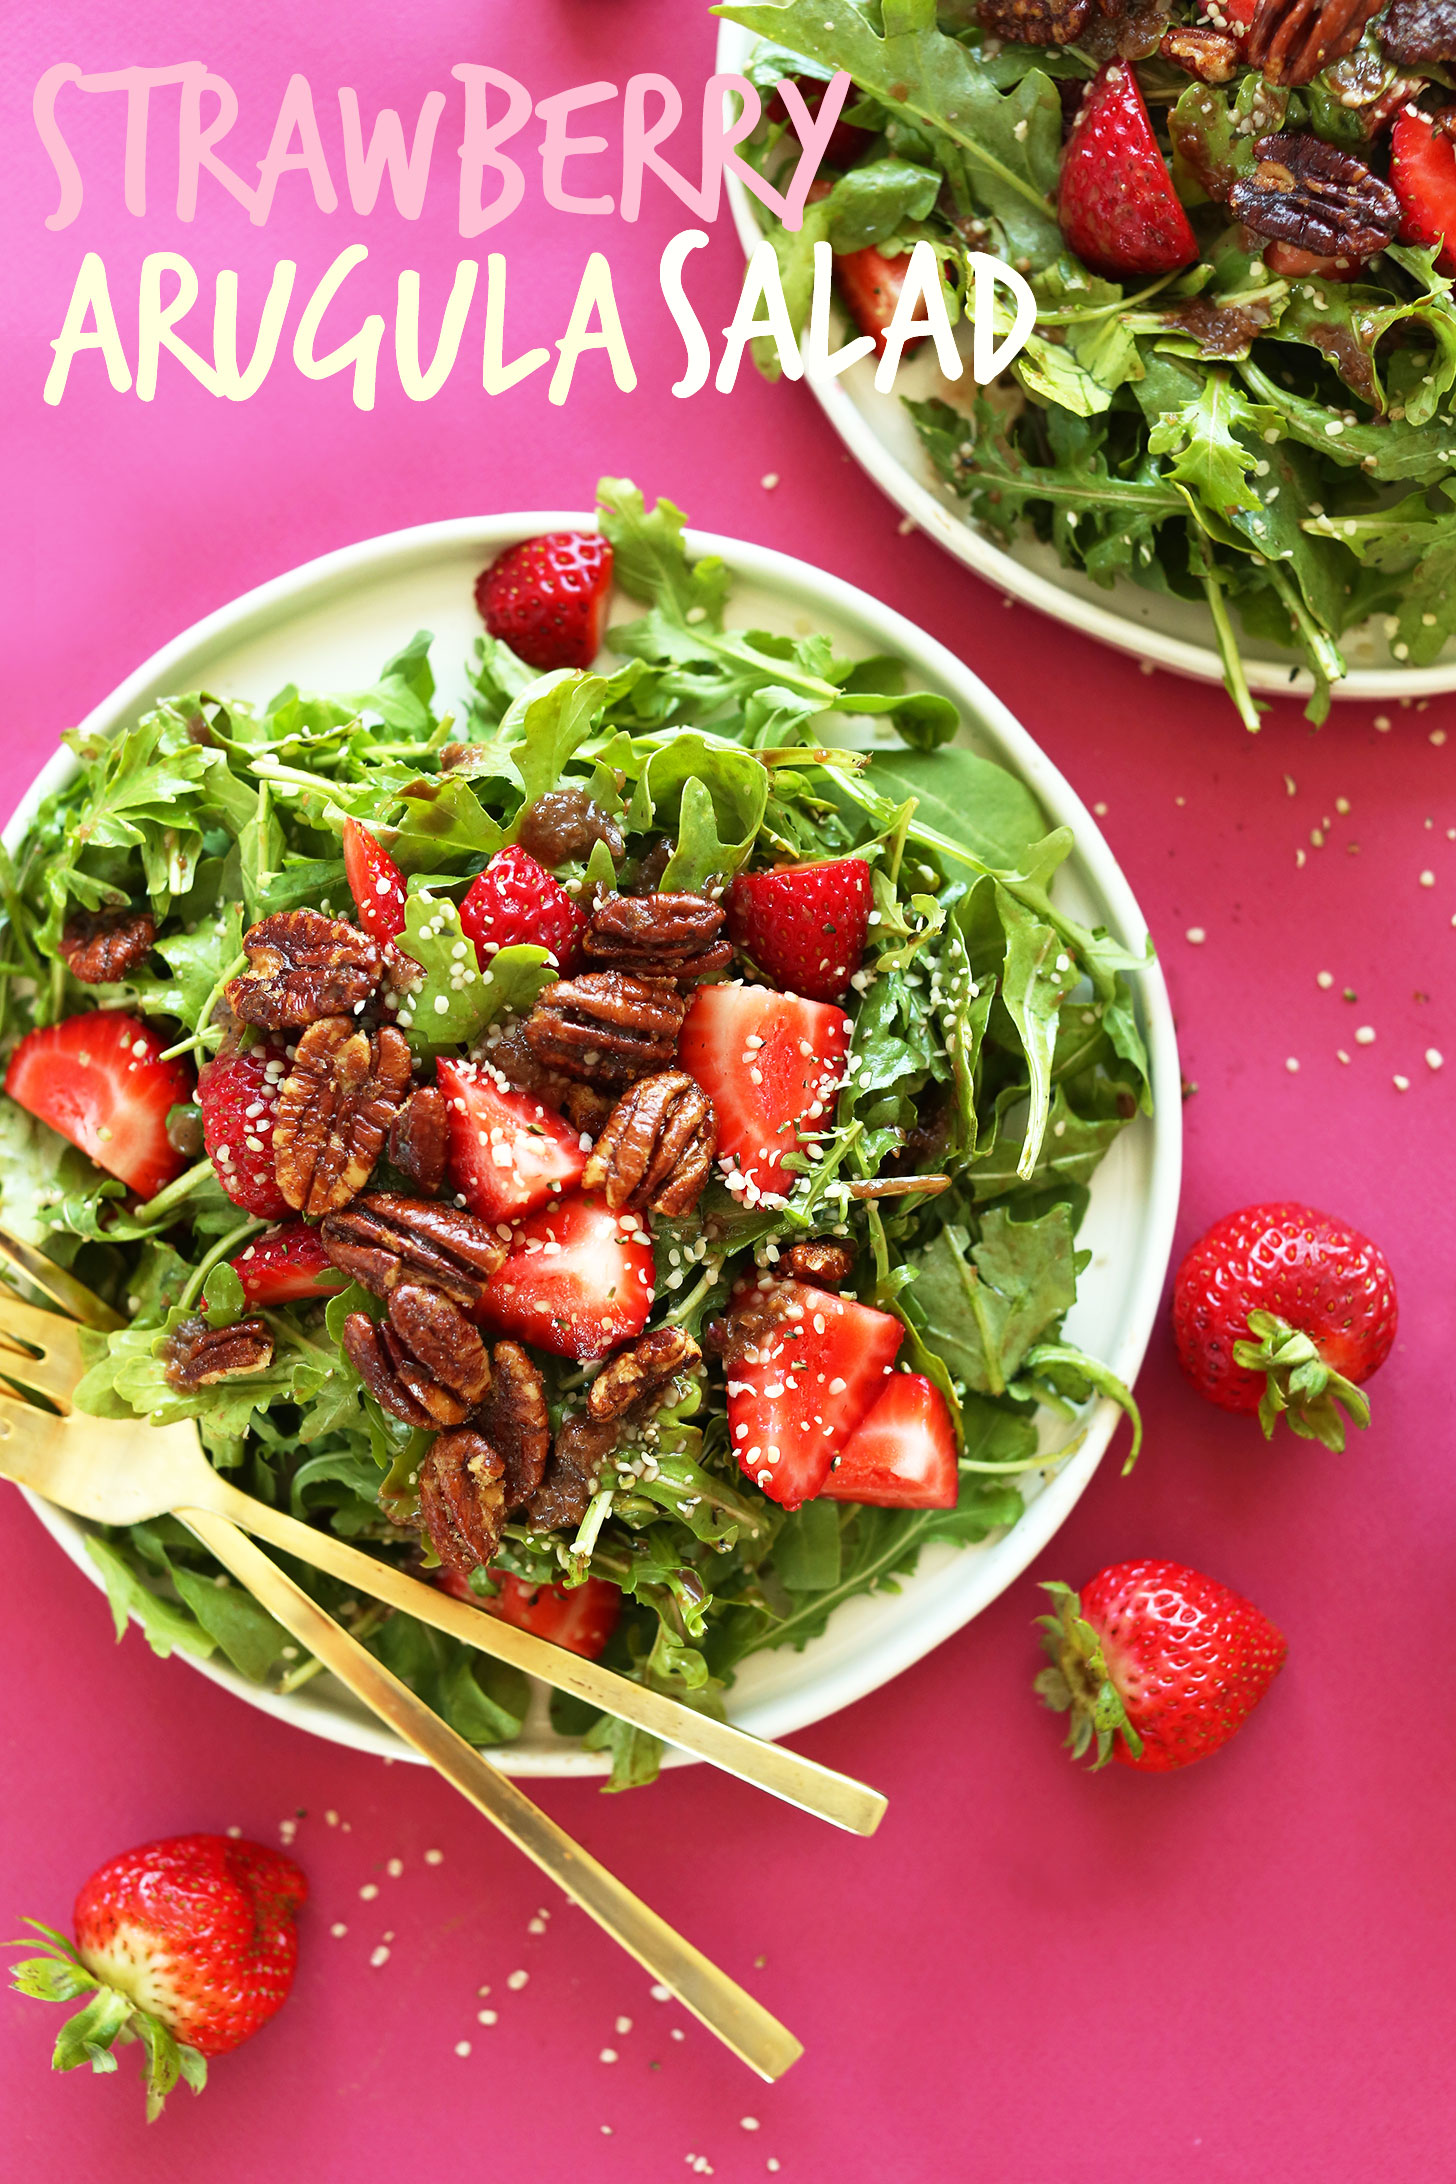 Big plate of vegan Strawberry Arugula Salad with Brown Sugar Pecans and Warm Shallot Vinaigrette